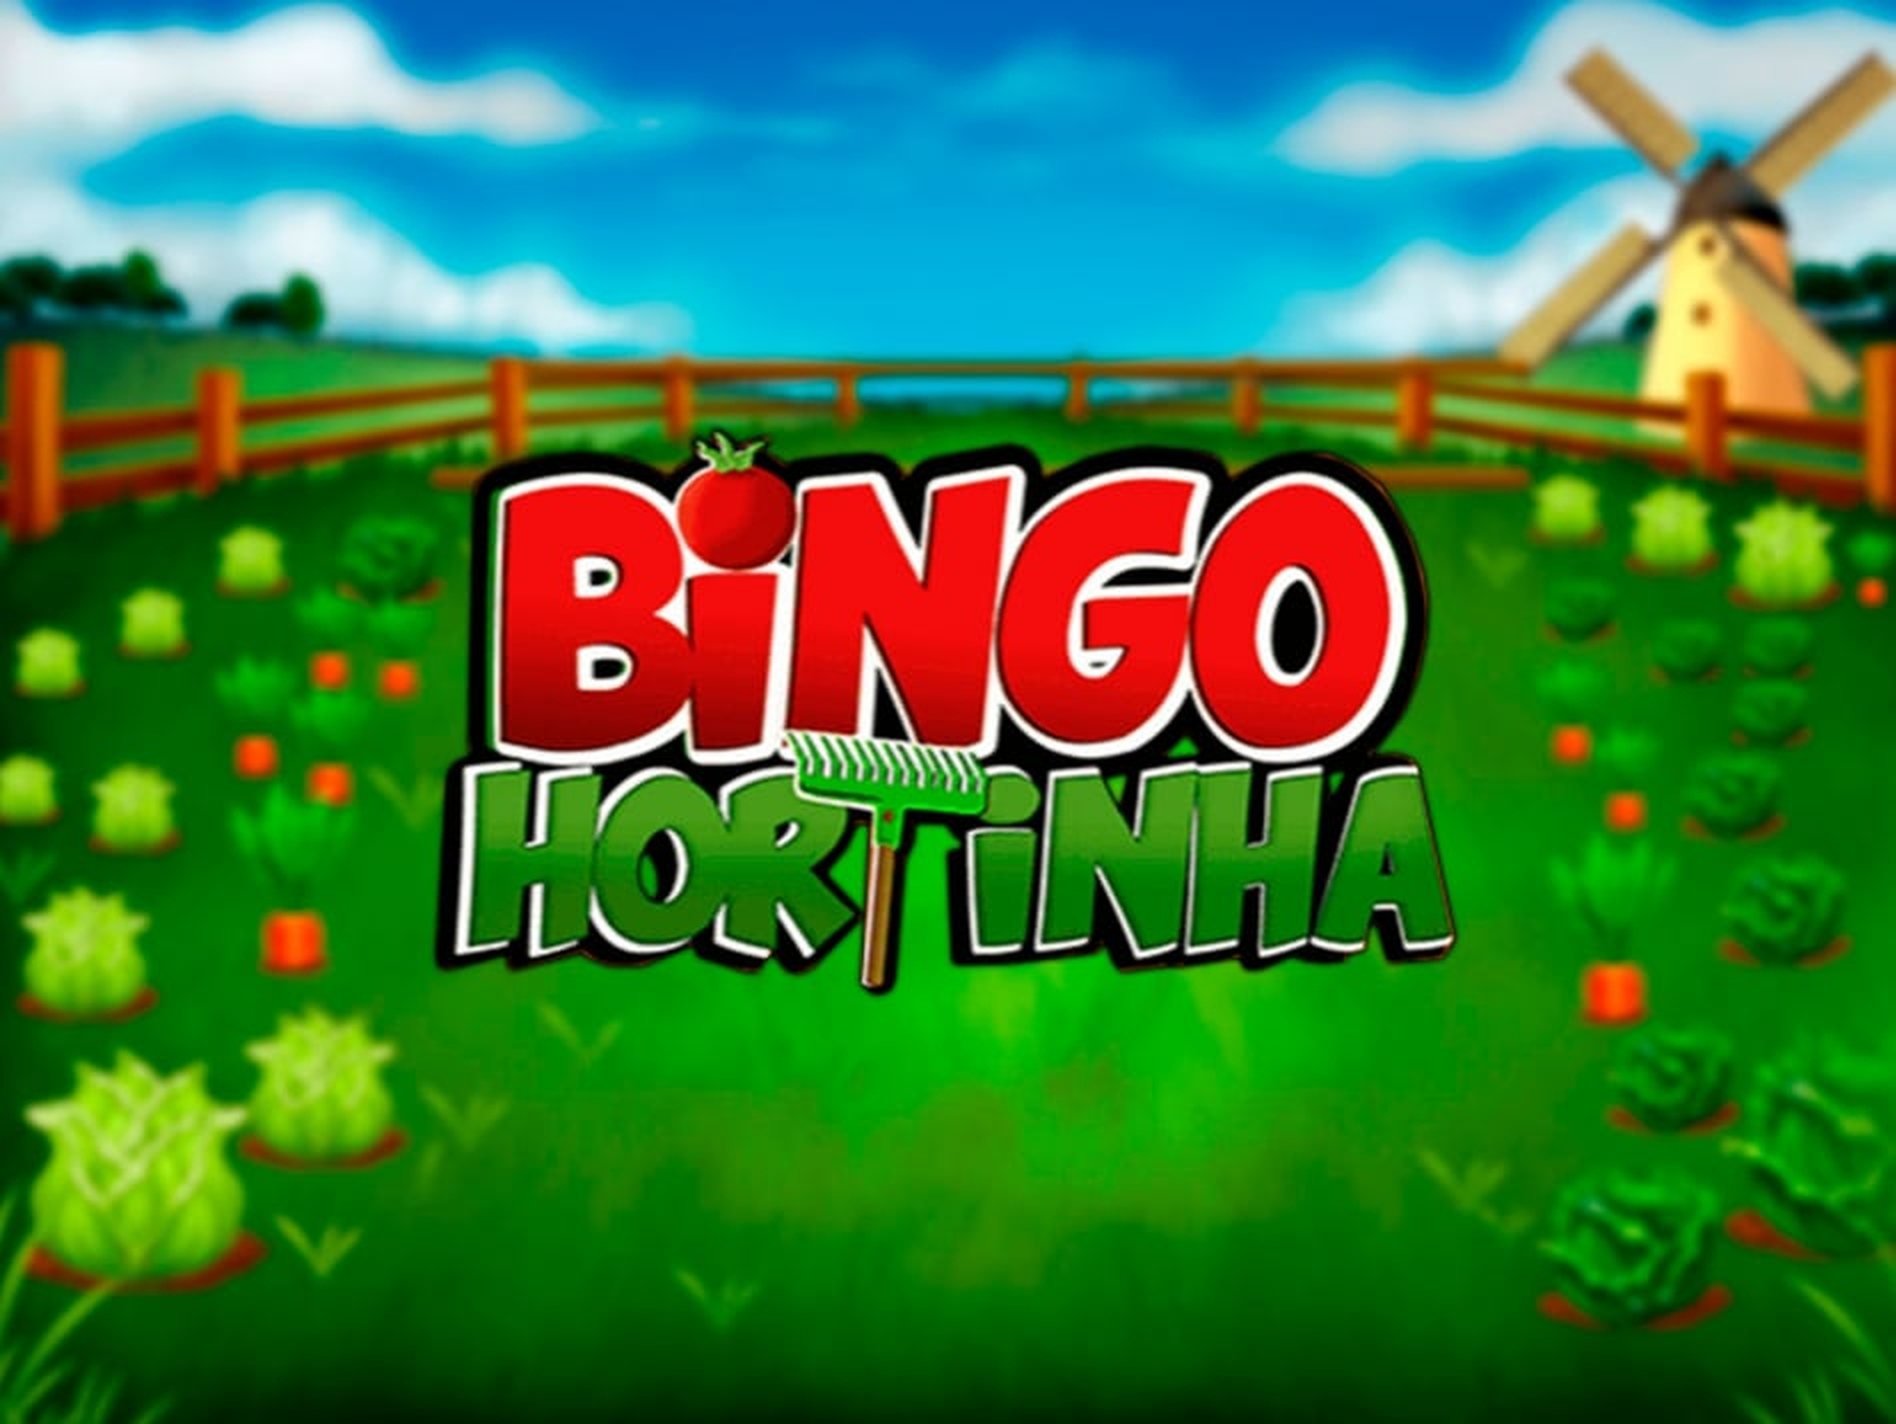 Se Bingo Hortinha Online Slot Demo Game, Caleta Gaming